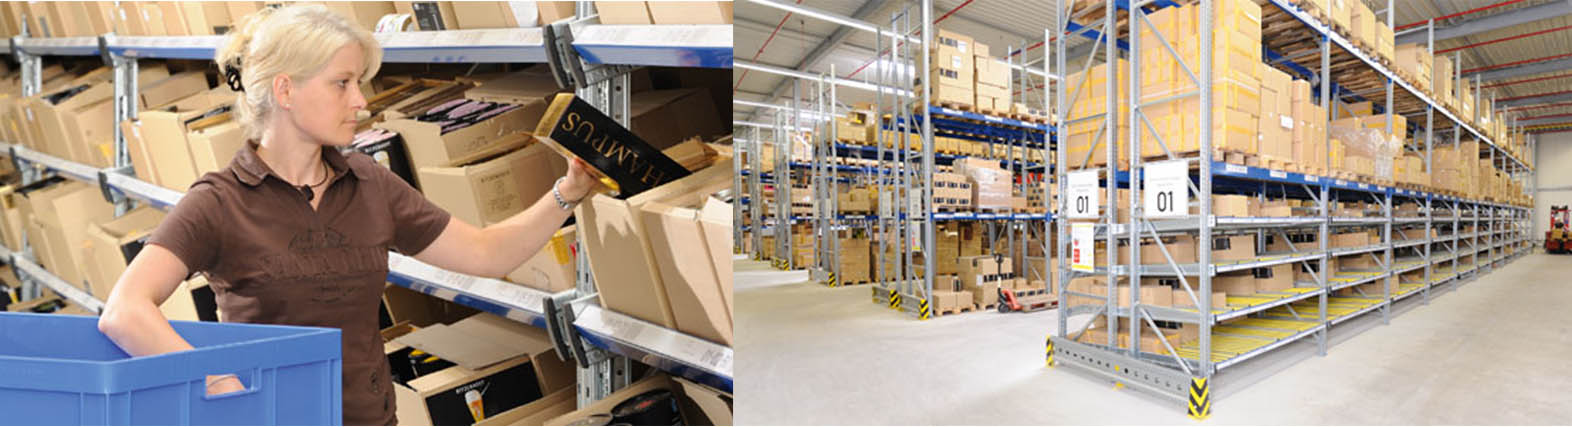 Warehouses with Carton Flow Shelving Systems. Quality Industrial Shelving. Made in USA. SSI Schaefer. www.schaefershelving.com